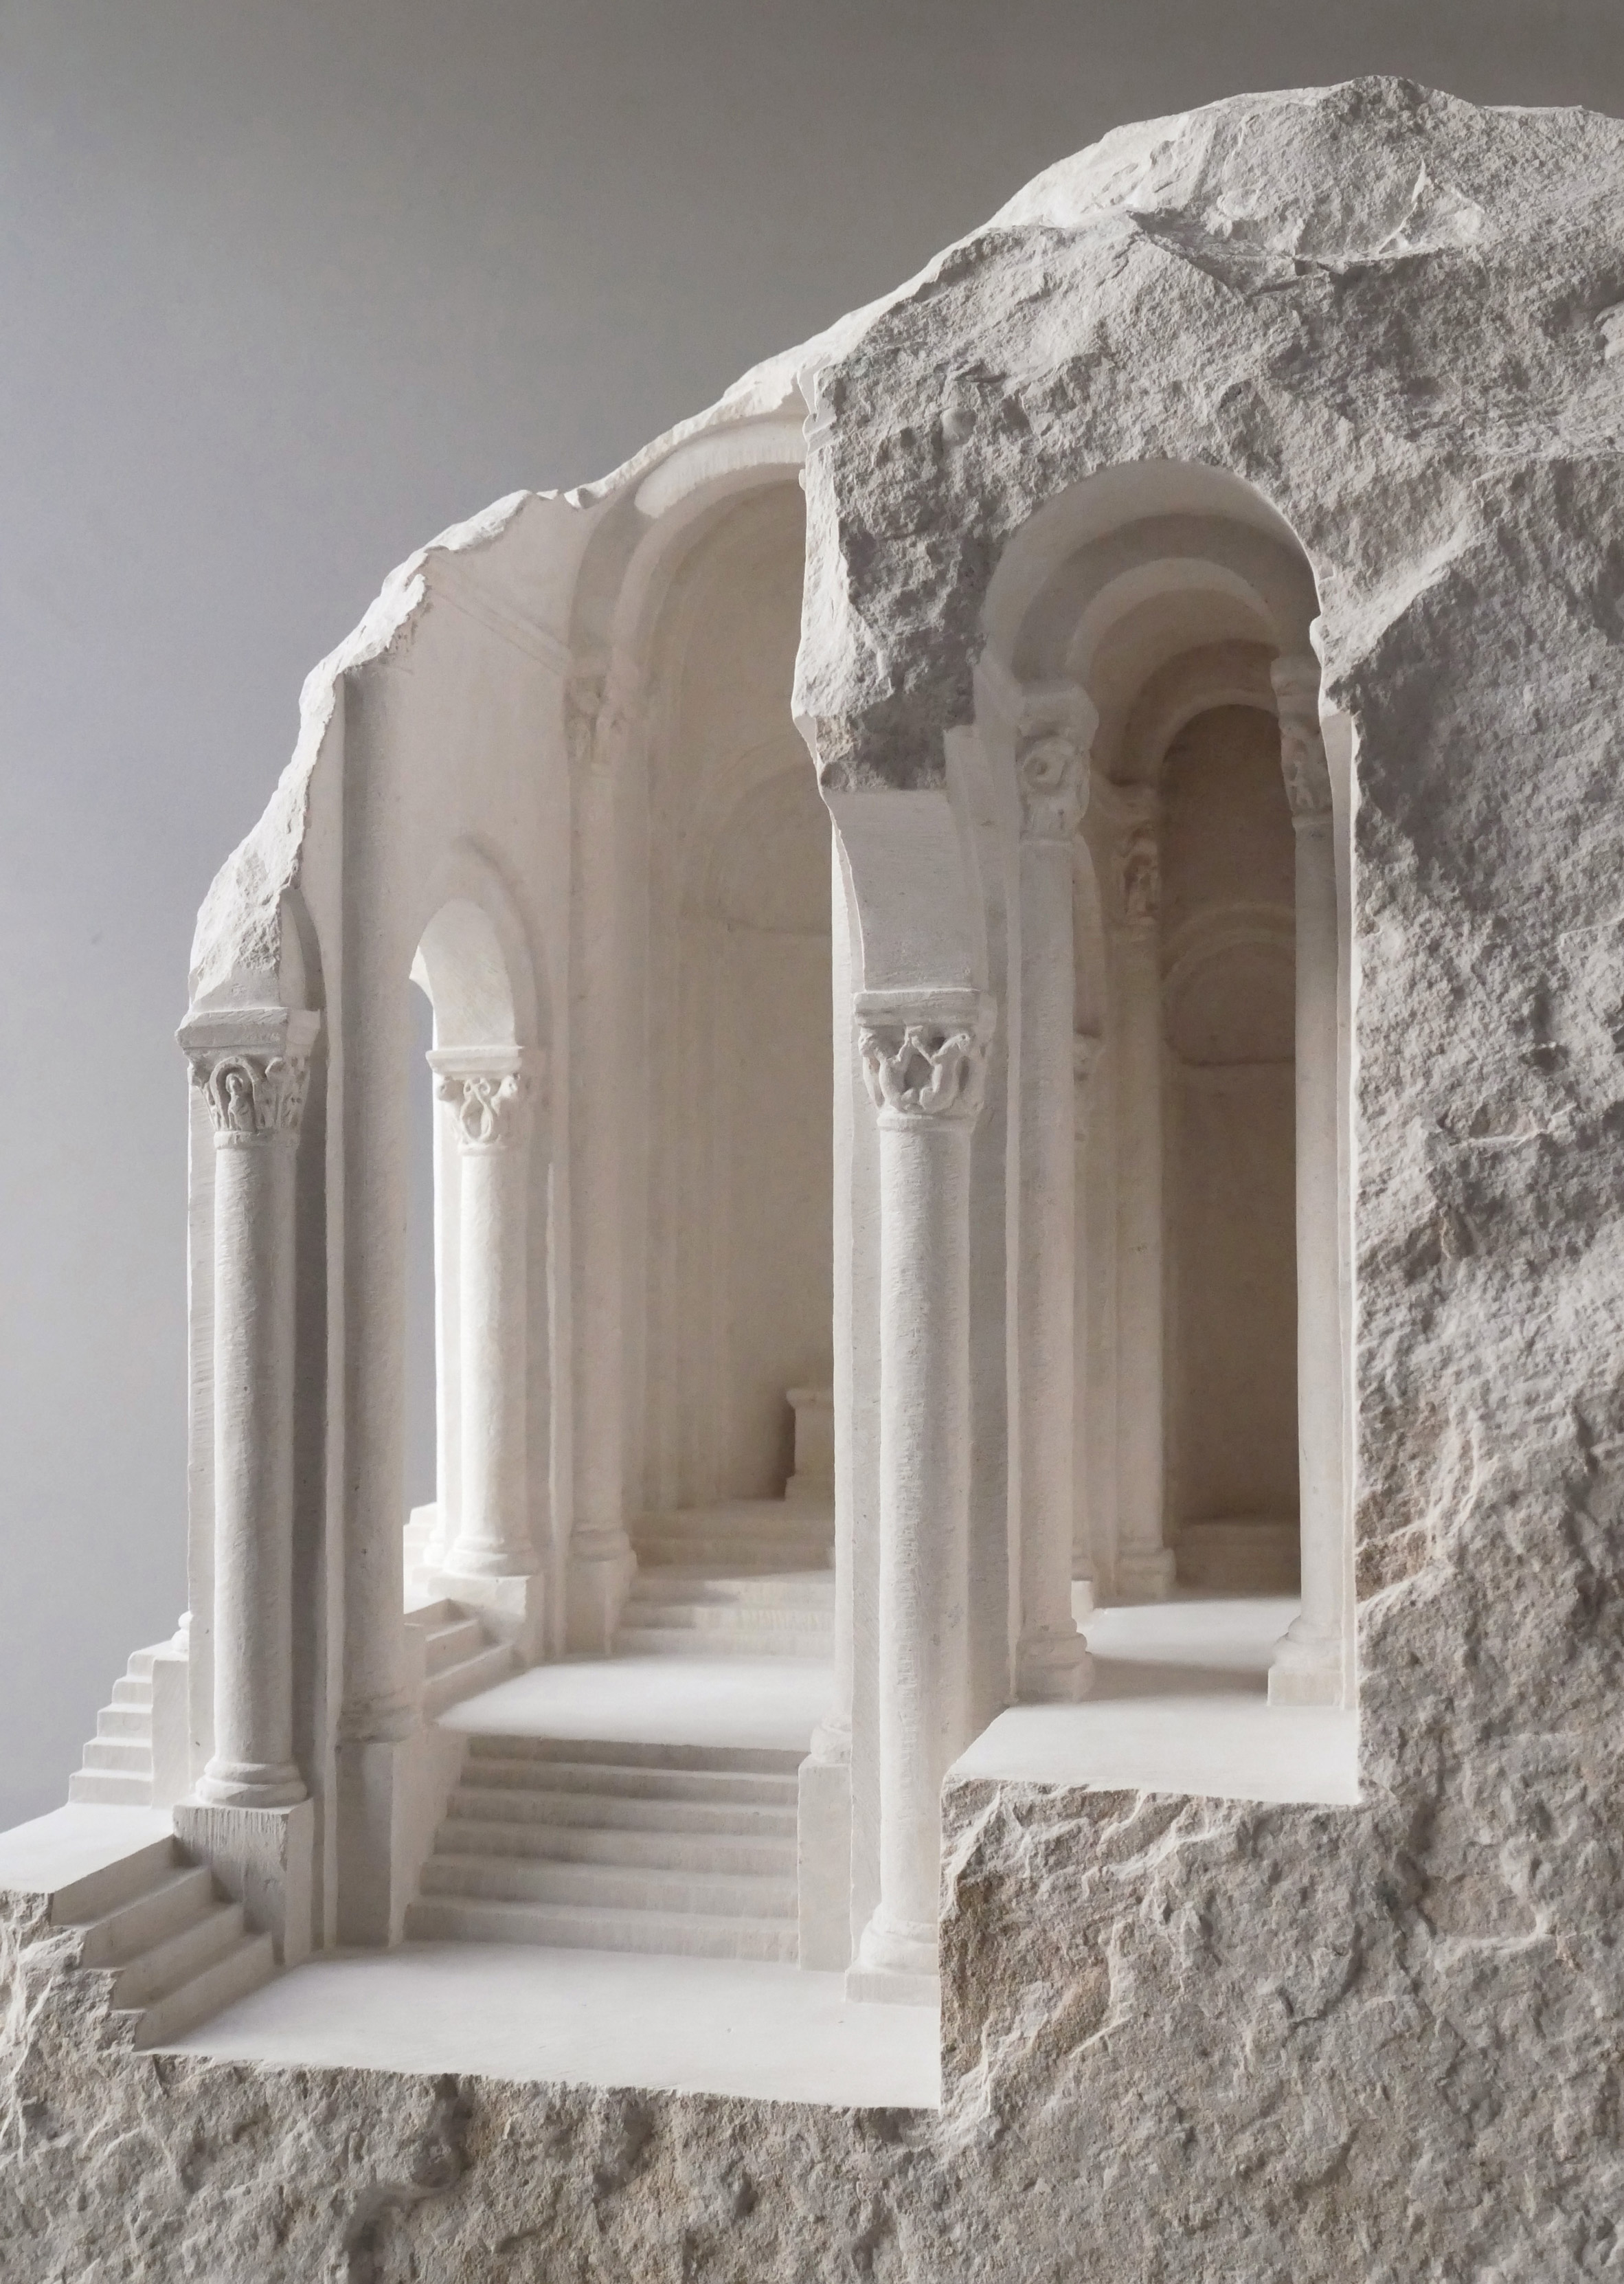 matthew simmonds sculptor architect interior design5